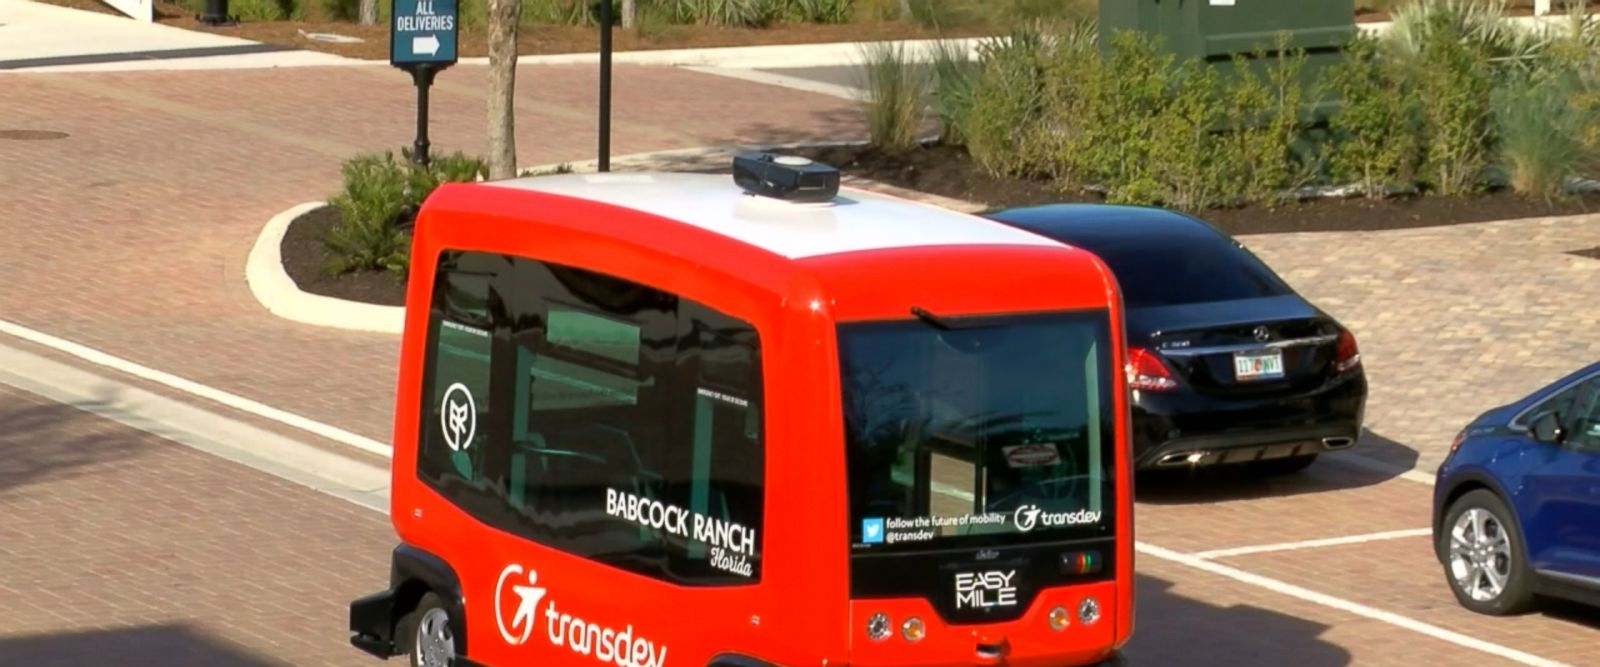 A solar field provides power for the town, including its driverless shuttles.